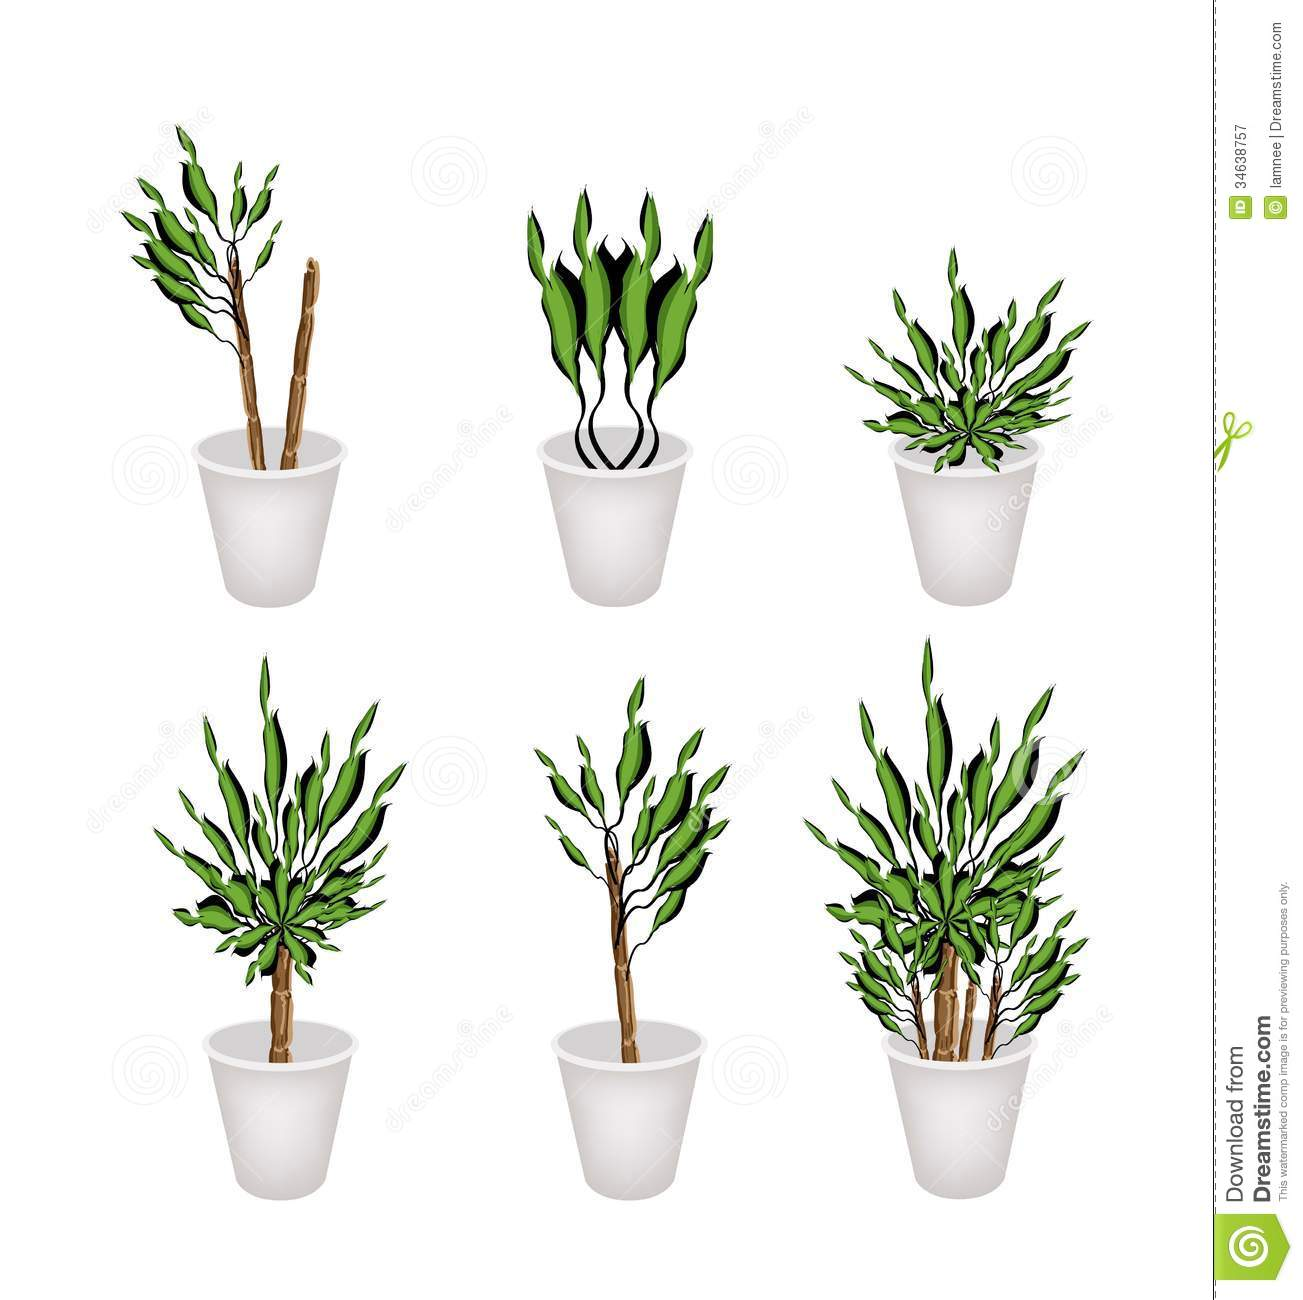 arbre de yucca ou usine de dracaena dans un pot de fleur illustration de vecteur illustration. Black Bedroom Furniture Sets. Home Design Ideas